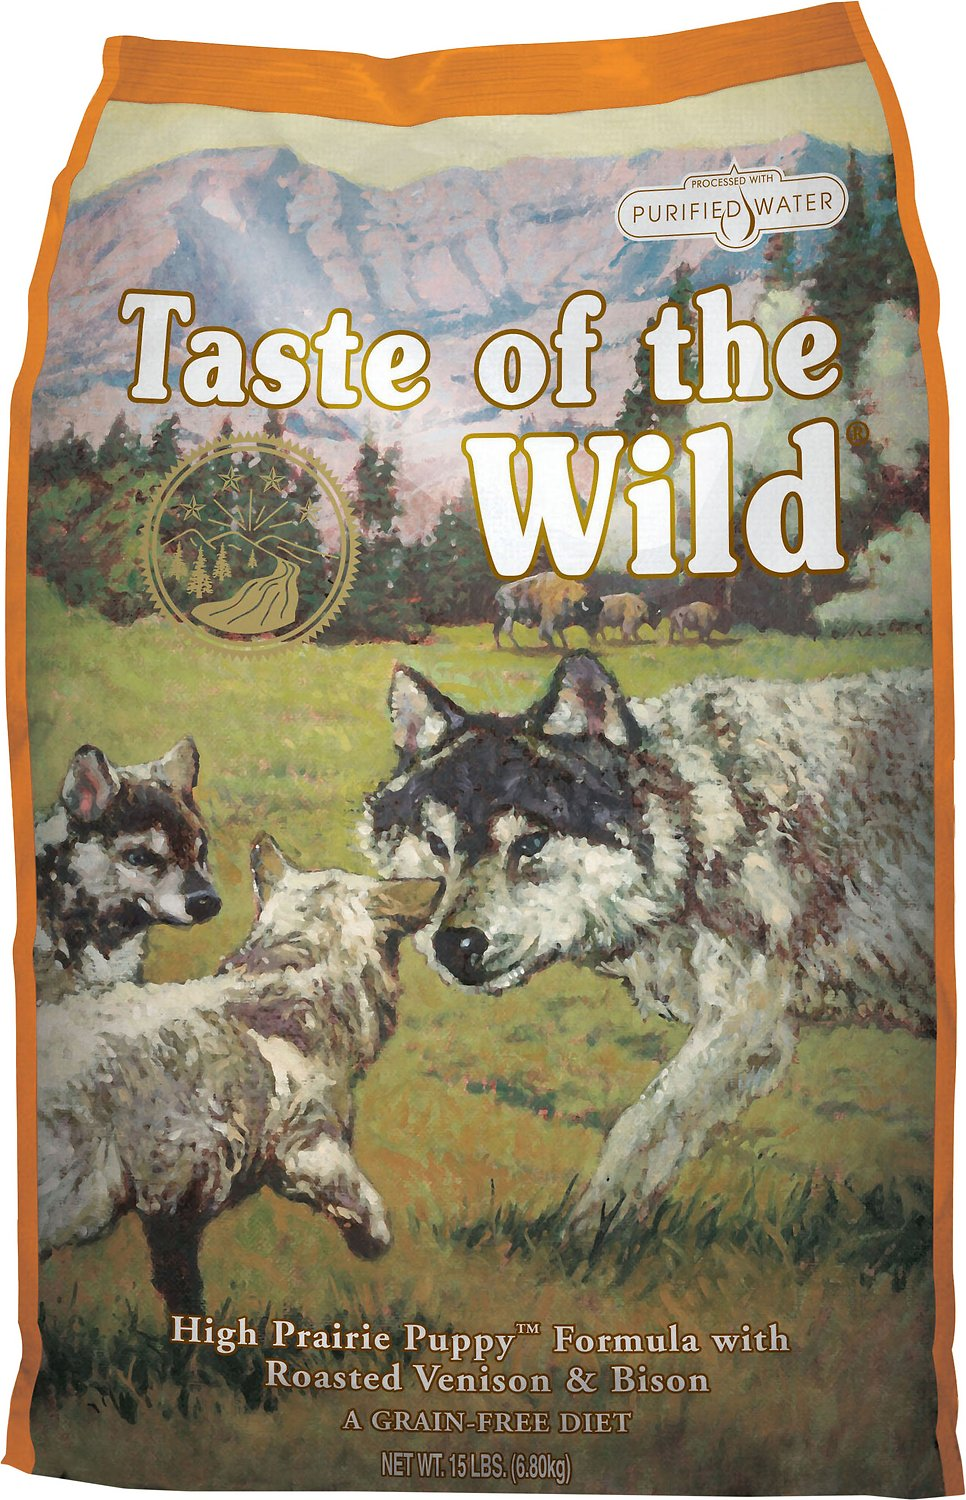 Taste Of The Wild Dog Food Reviews >> Taste of the Wild High Prairie Puppy Formula Grain-Free ...